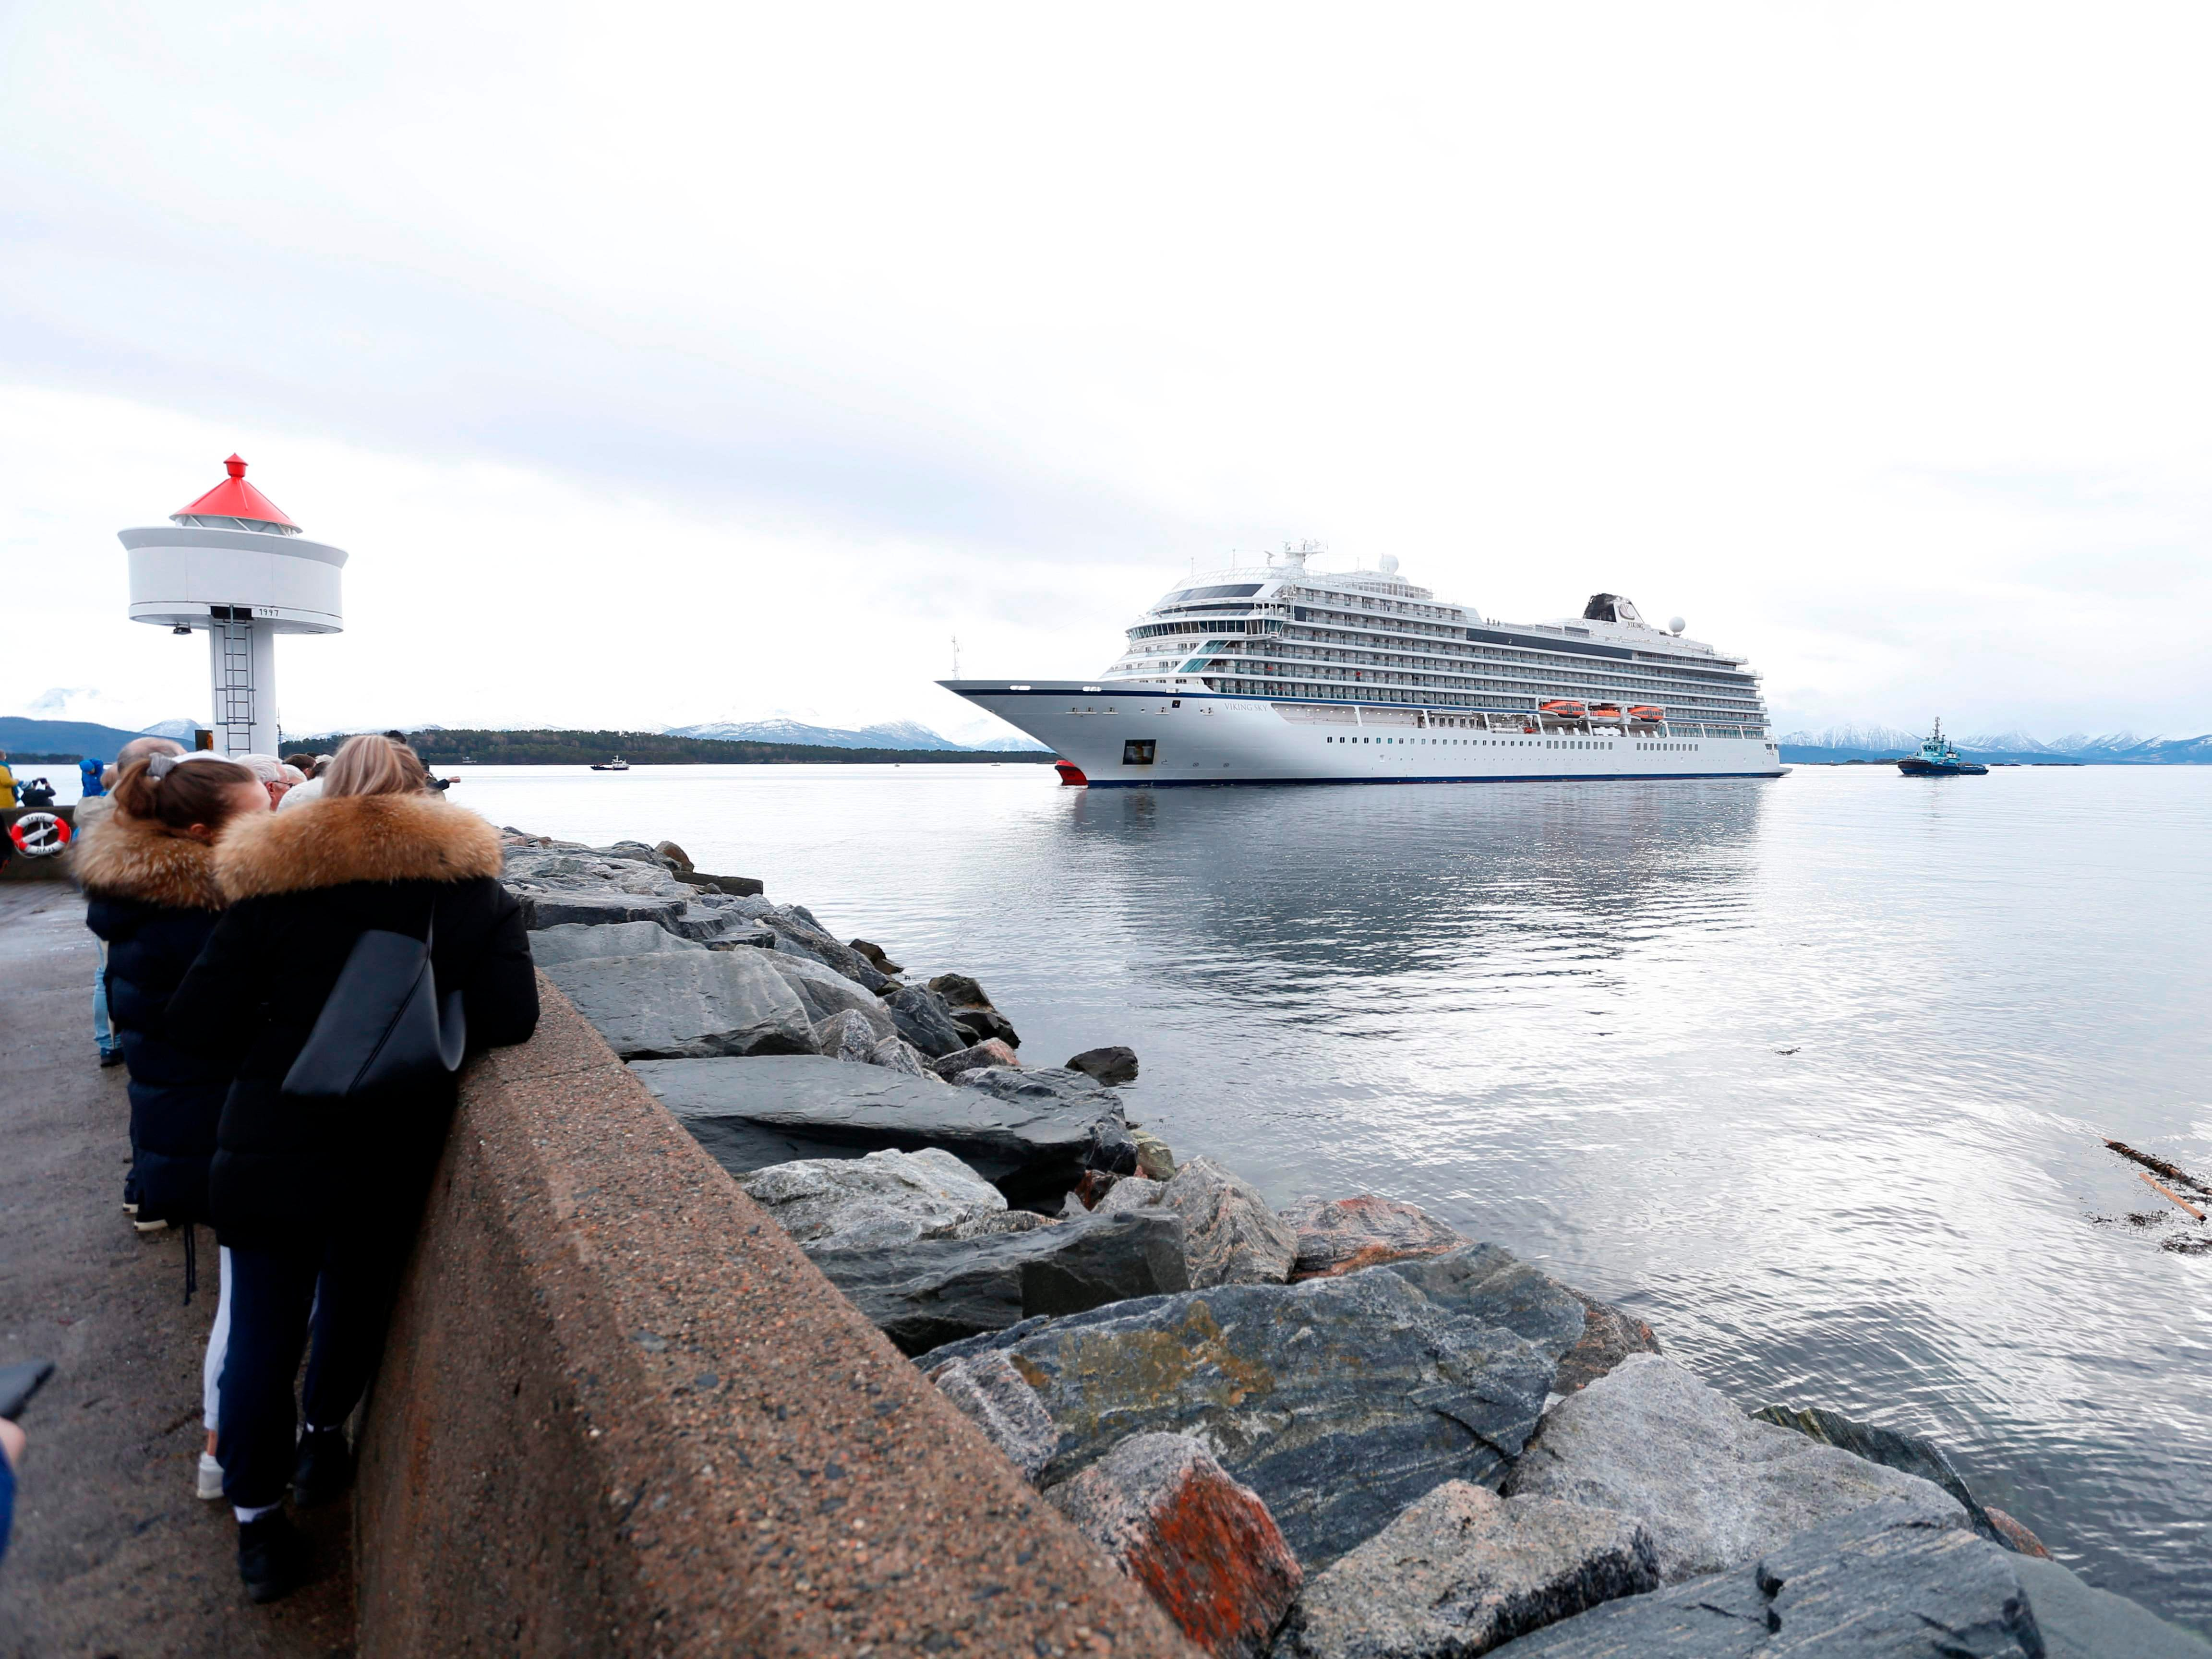 The Viking Sky reaches the port of Molde, Norway, on March 24, 2019.